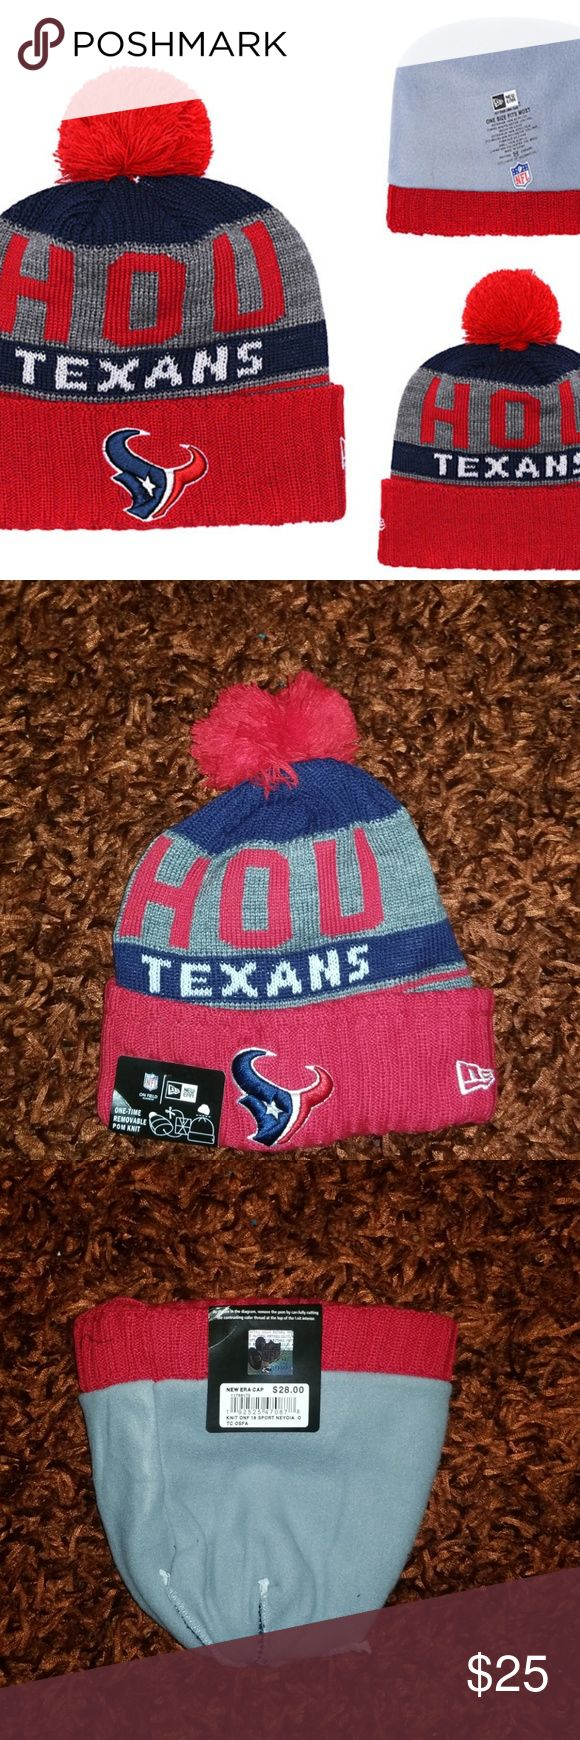 New Era Houston Texans Cuffed Knit Hat Brand new  Never used  Same bussiness day shipping Perfect gift for your friend, boyfriend or husband Check my …